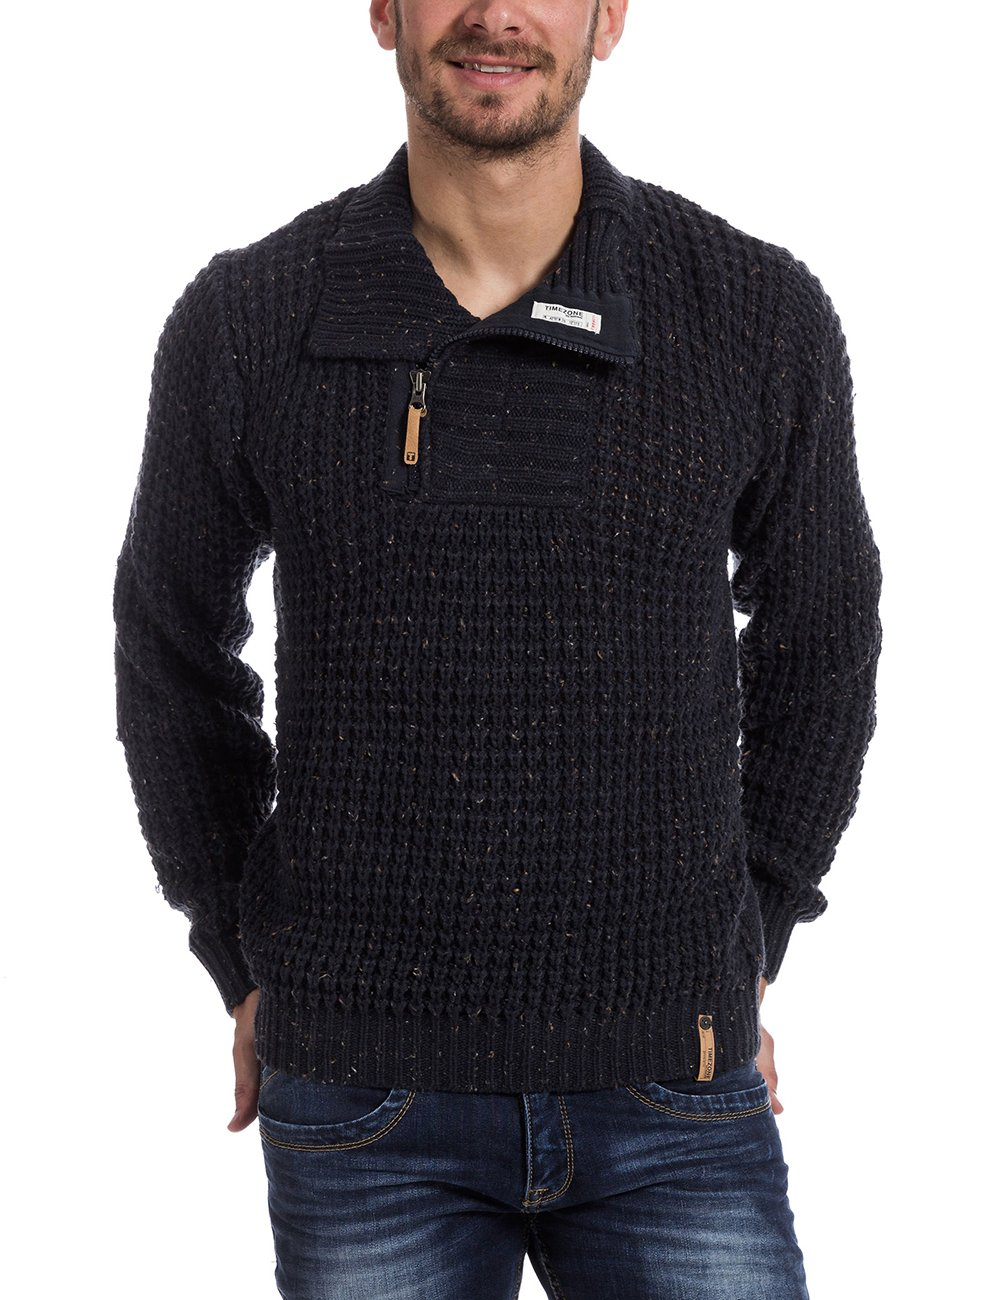 Mens 28-6034 Jumper Timezone Cheap Browse Largest Supplier Cheap Online New Fashion Style Of Cheap Sale Brand New Unisex rwg0Iiov